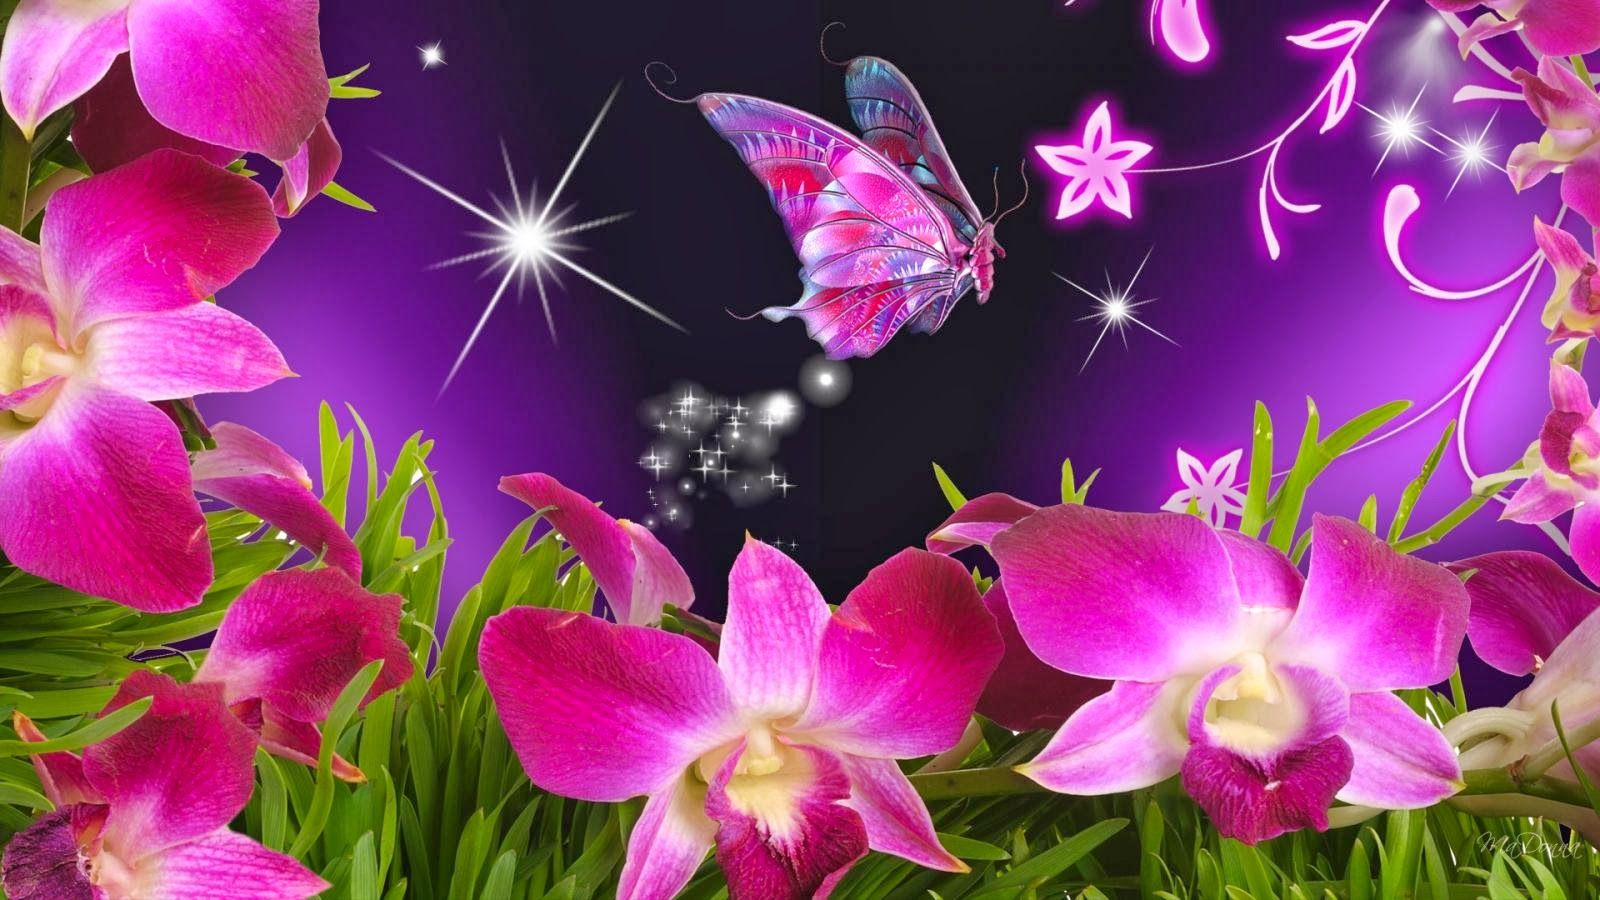 wallpaper flowers and butterflies | beautiful flowers and